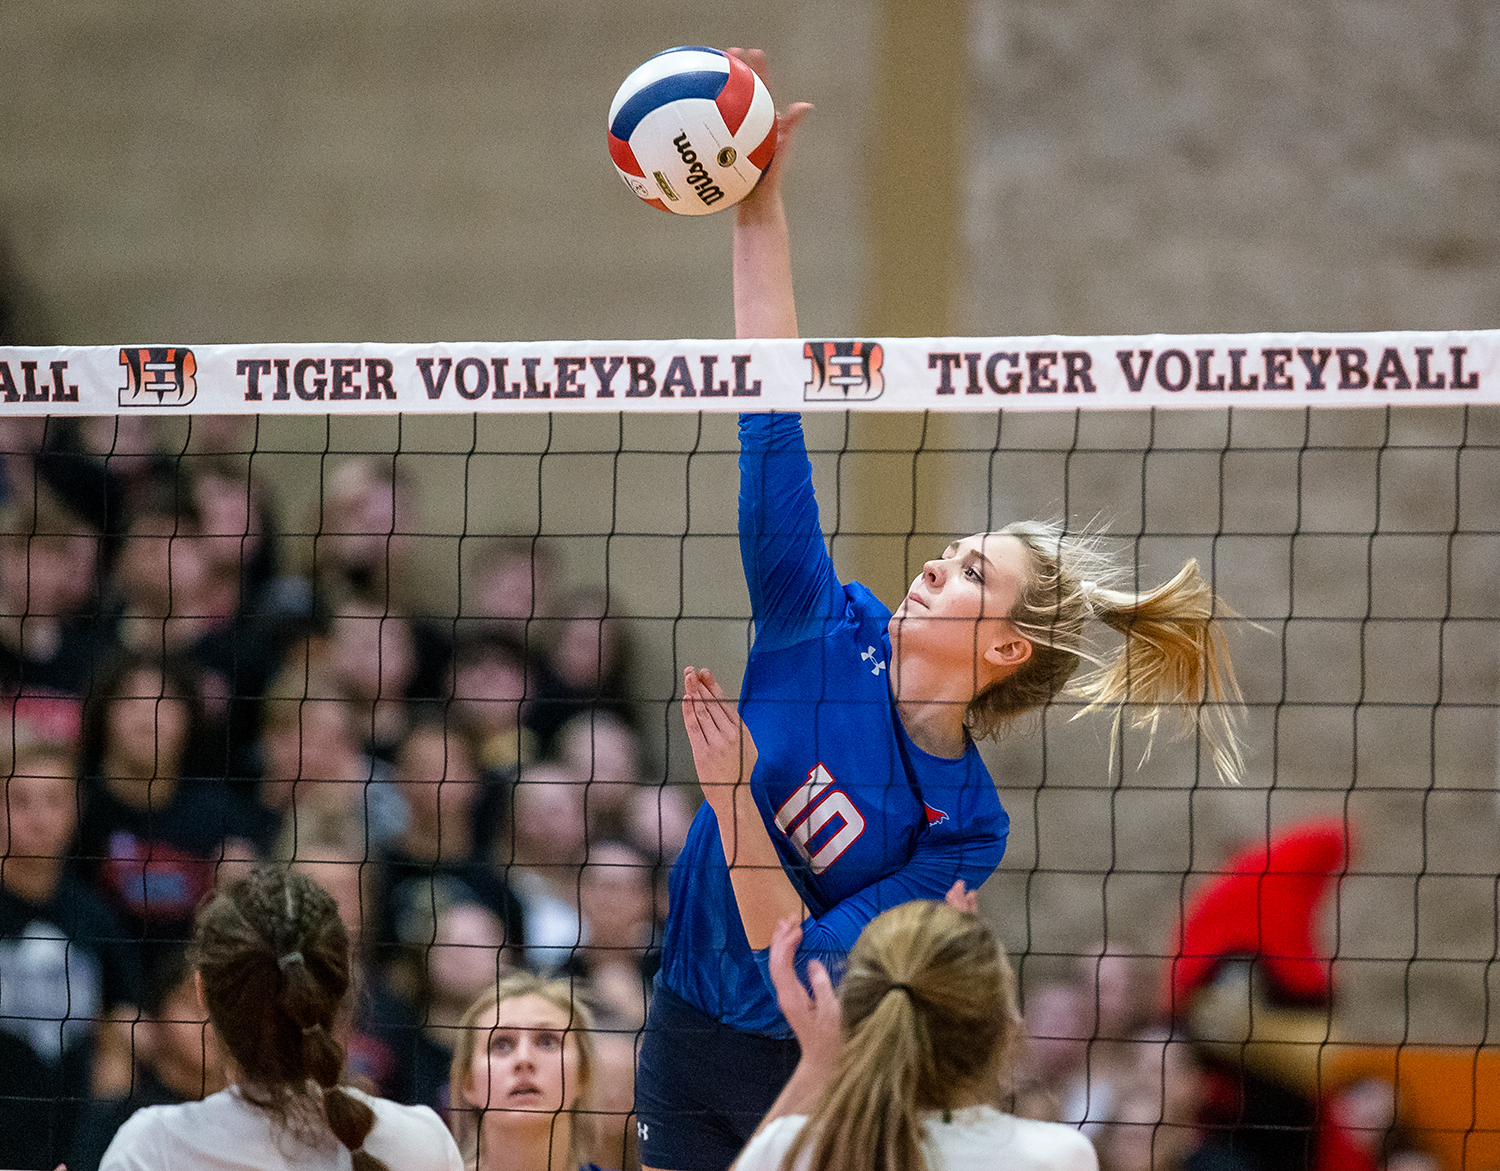 Pleasant Plains' Allie Edwards (10) fires a kill against Eureka in the Class 2A Beardstown Supersectional at Beardstown High School, Friday, Nov. 2, 2018, in Beardstown, Ill. [Justin L. Fowler/The State Journal-Register]